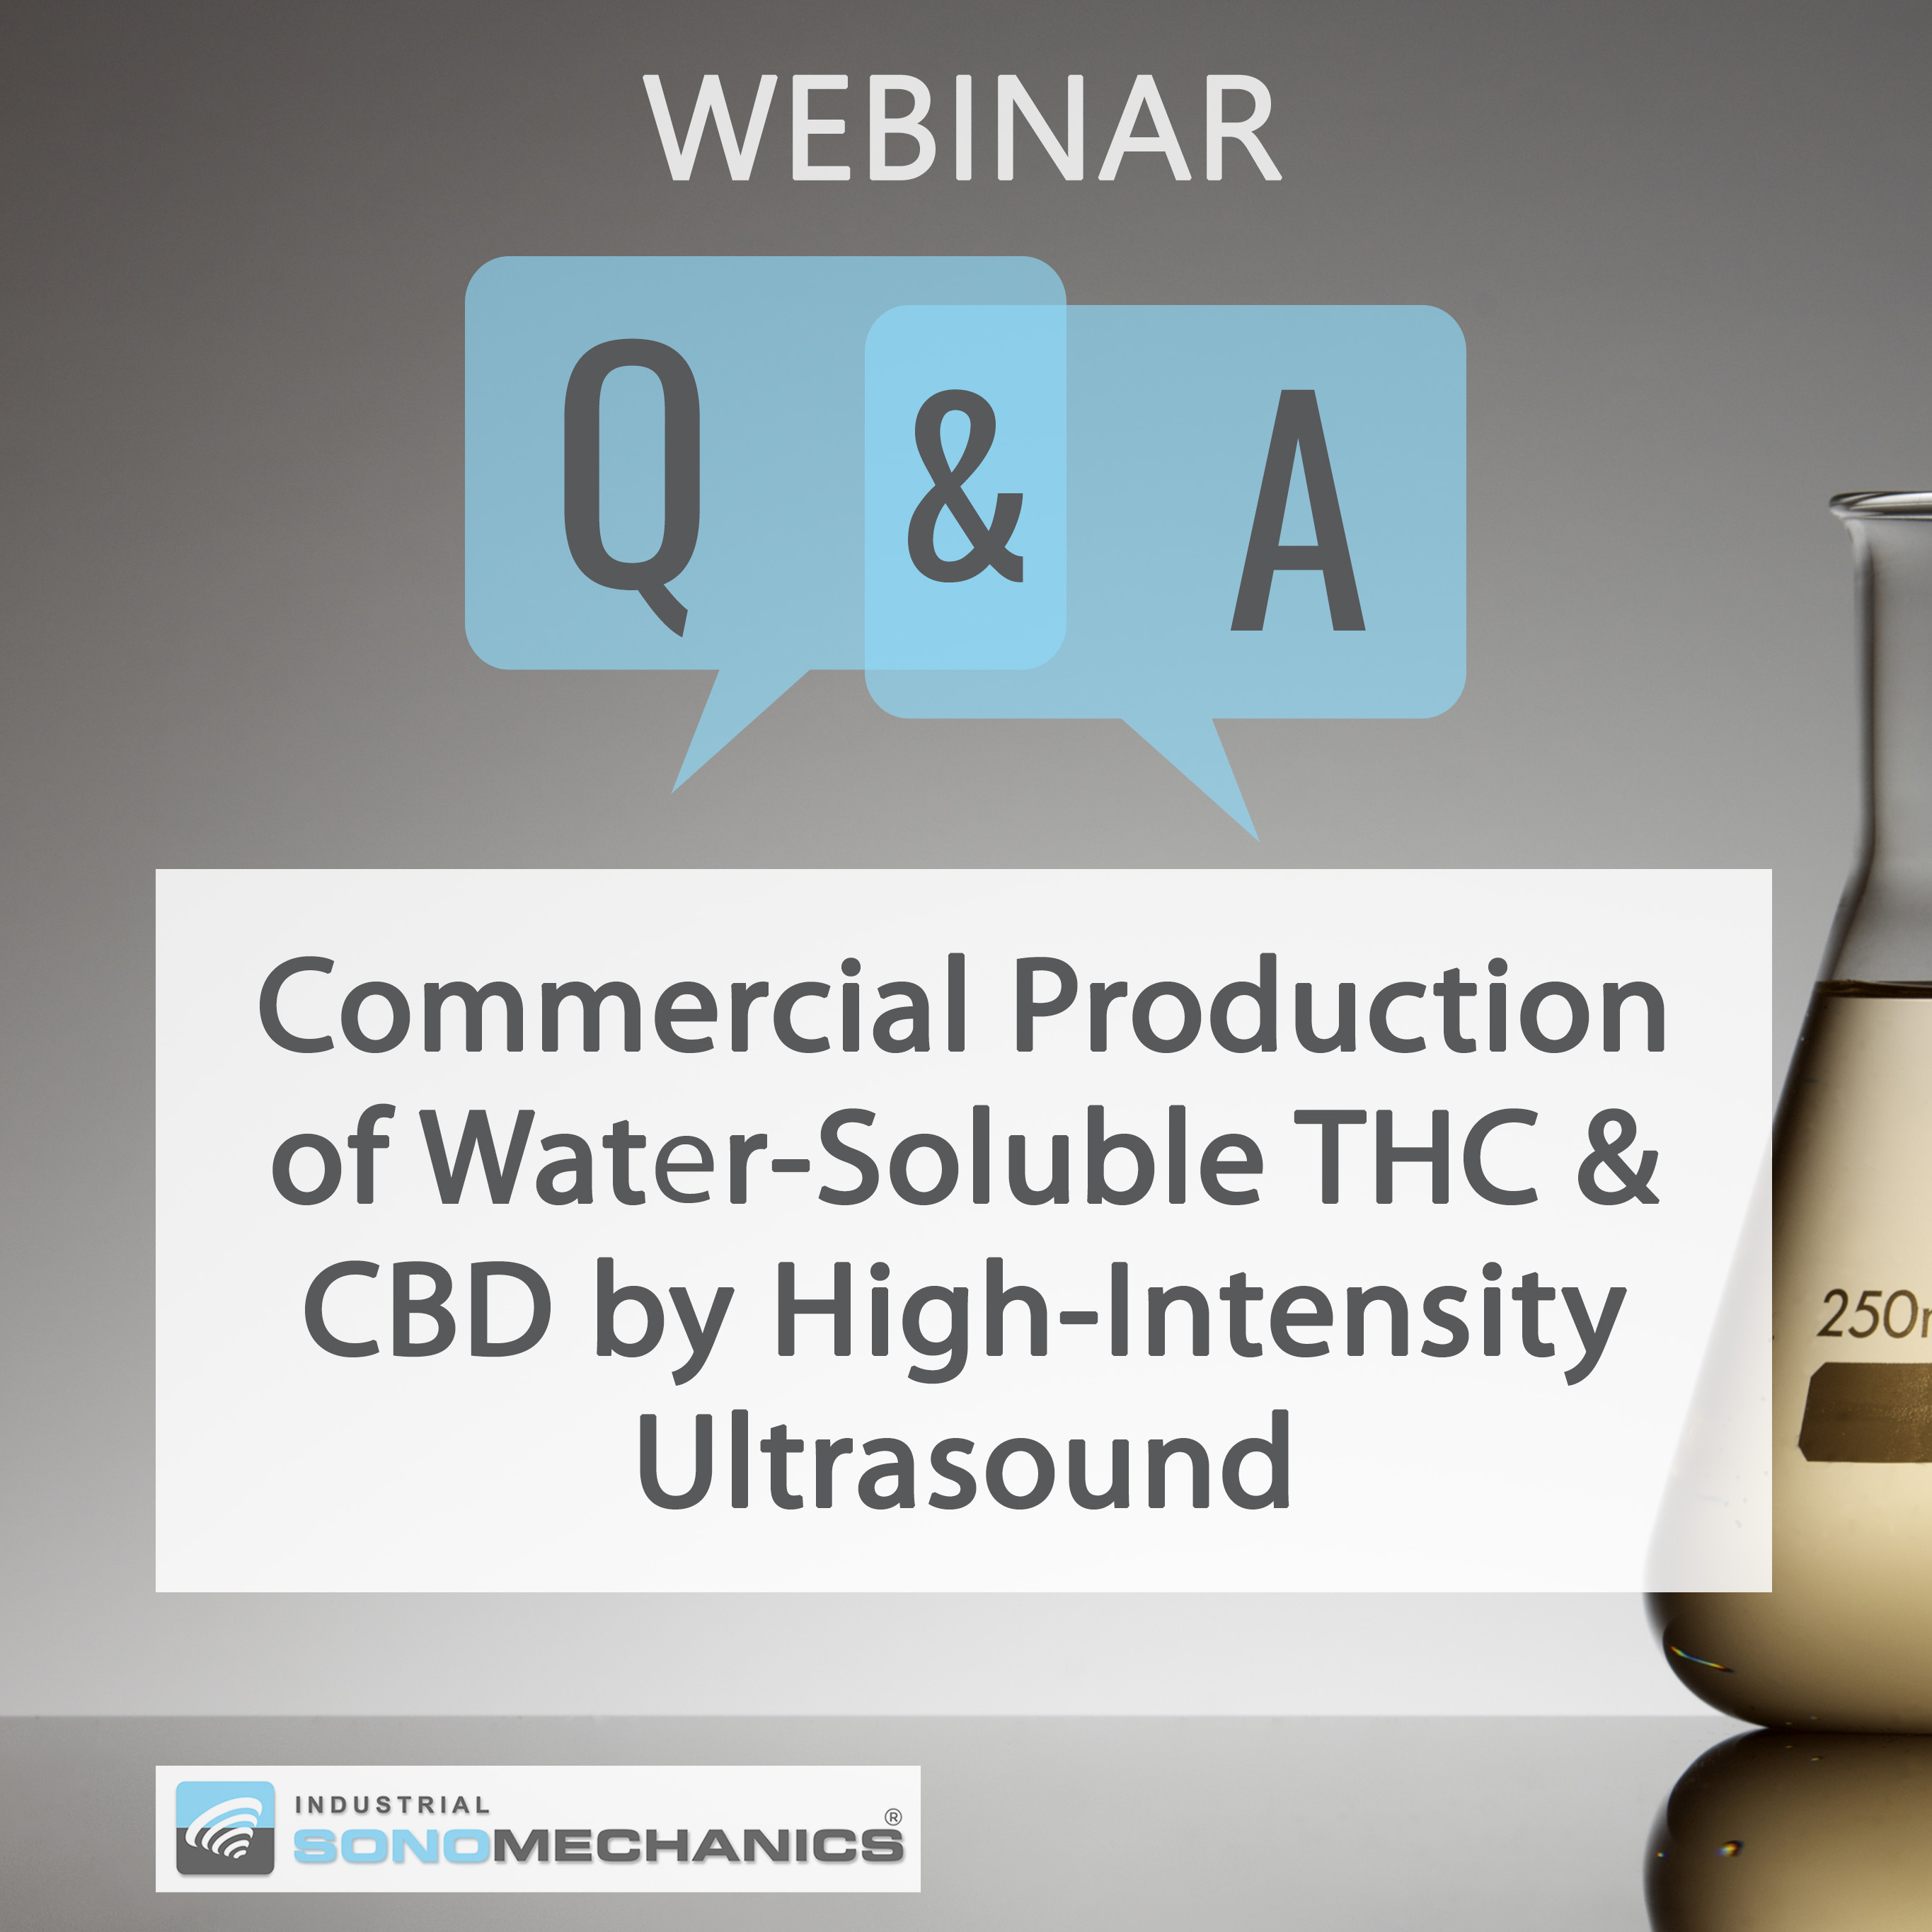 Webinar Recording and Q&As: Commercial Production of Water-Soluble THC & CBD